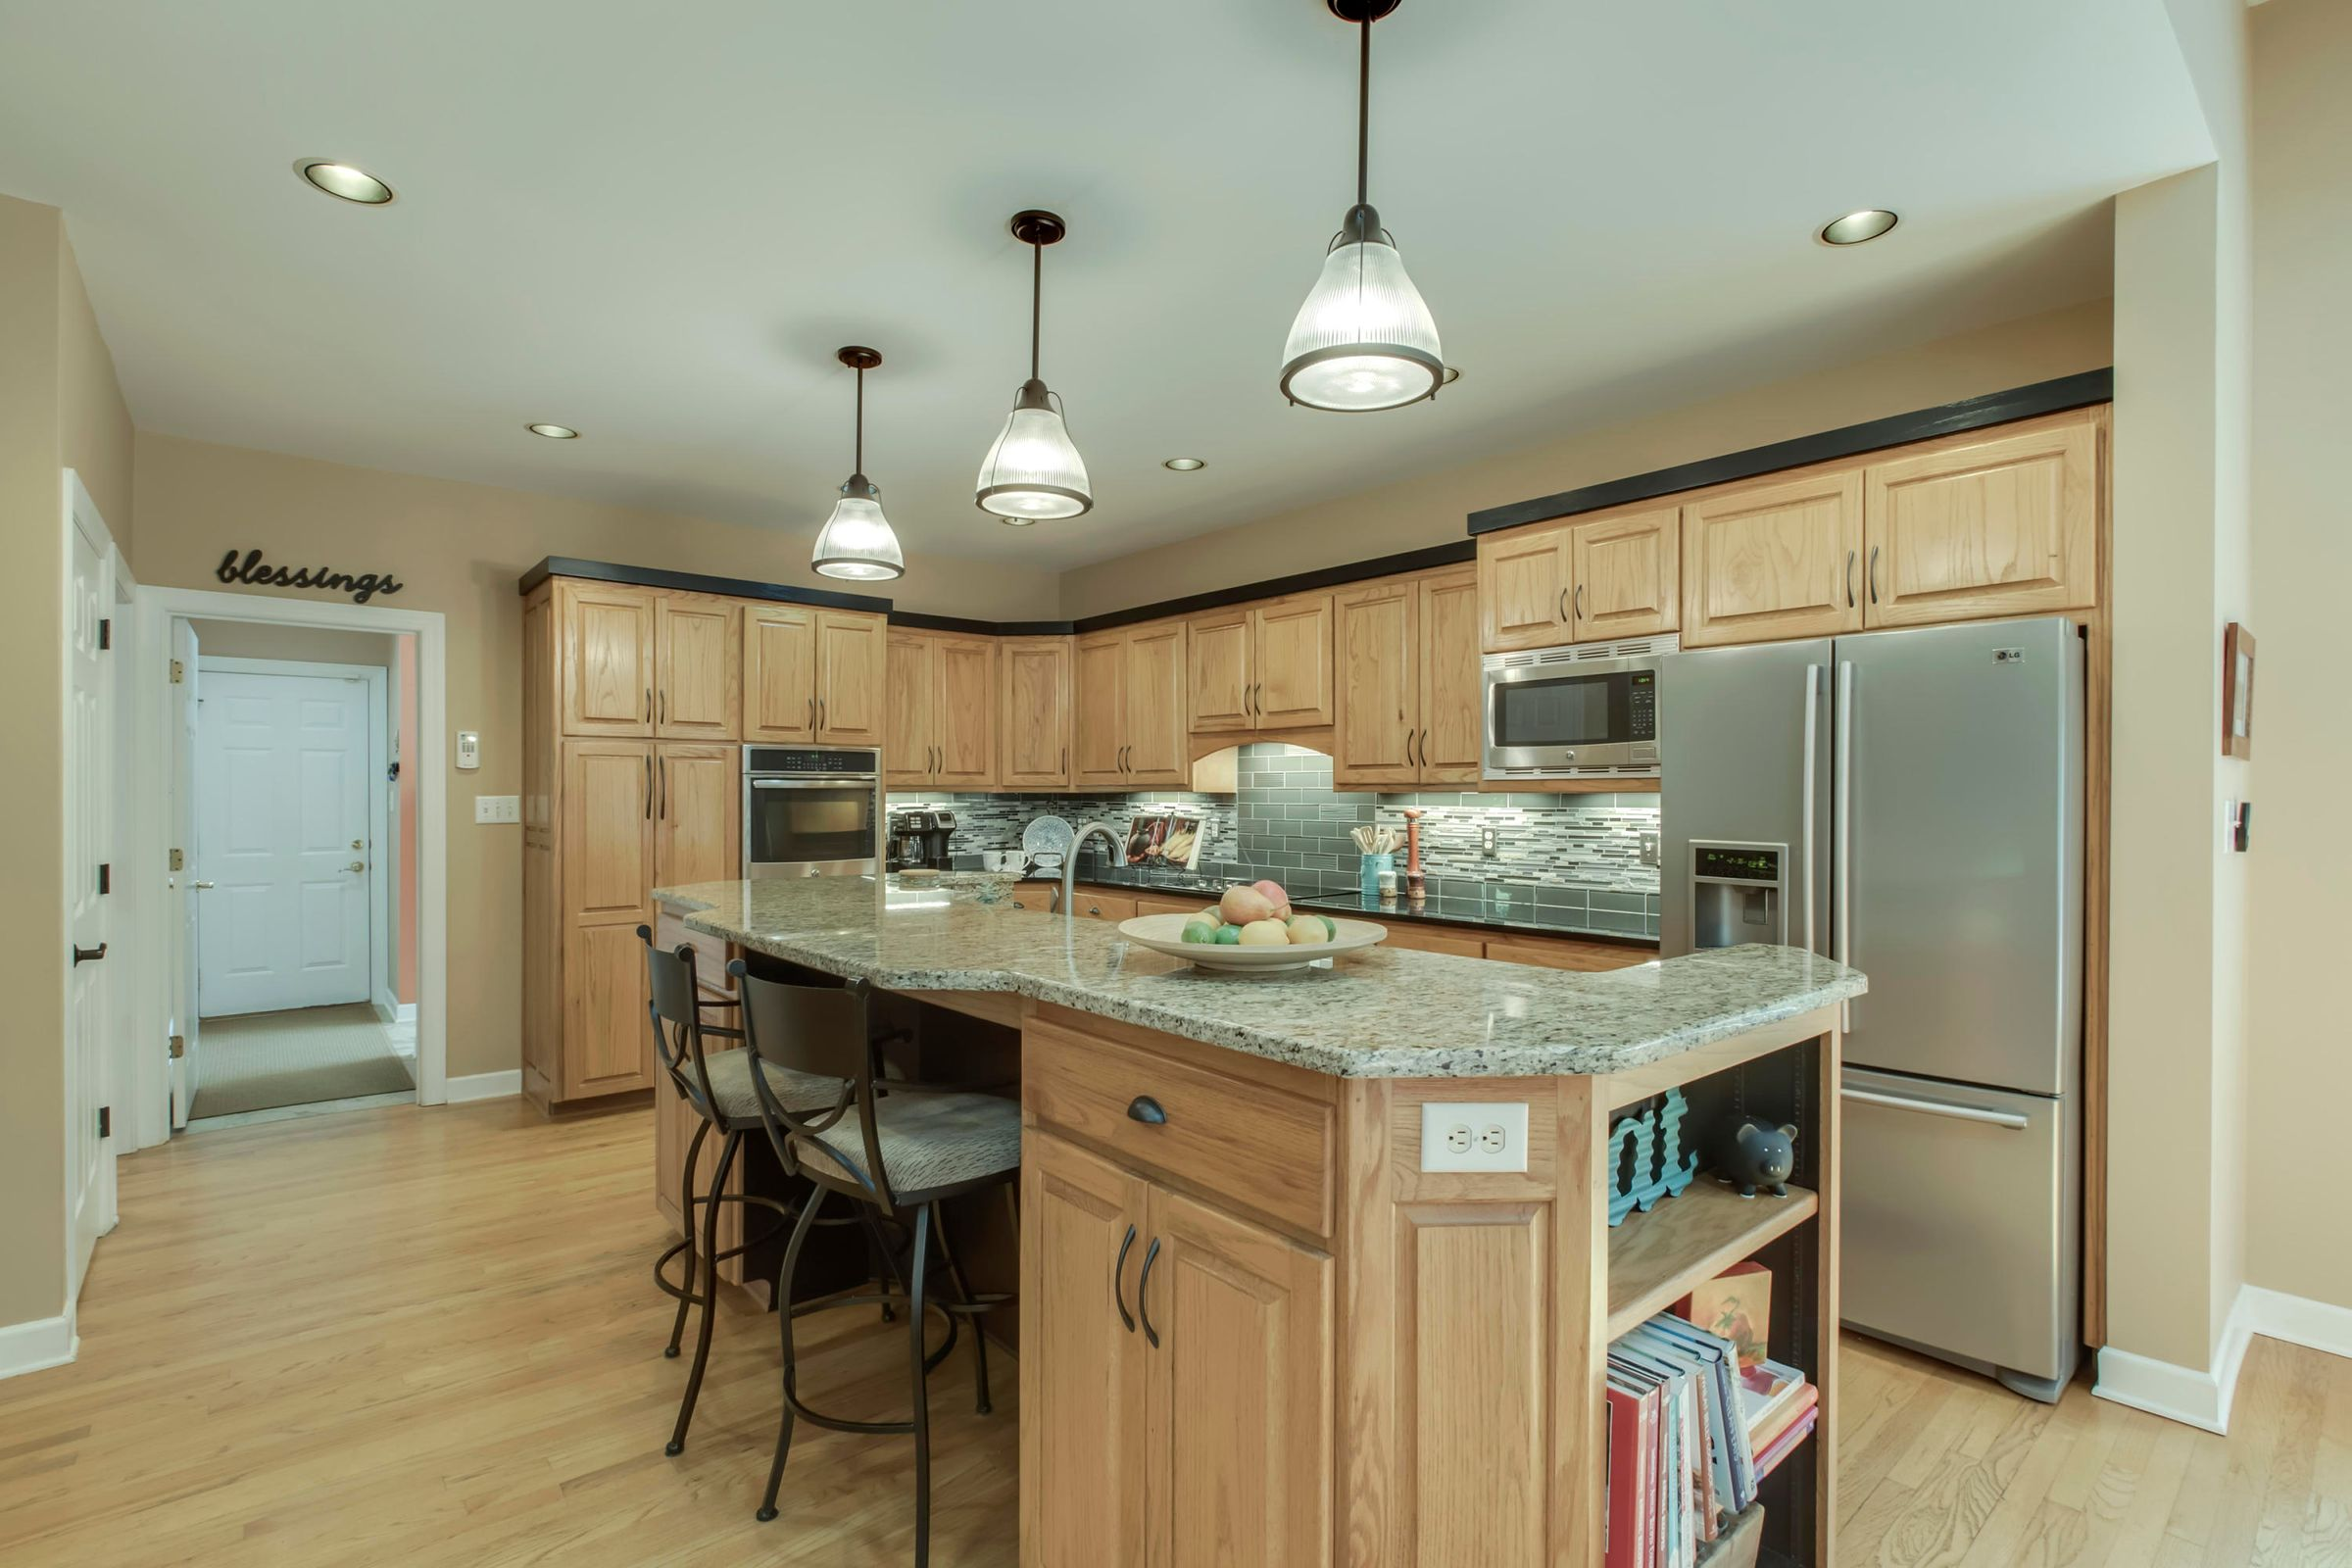 newer stainless appliances